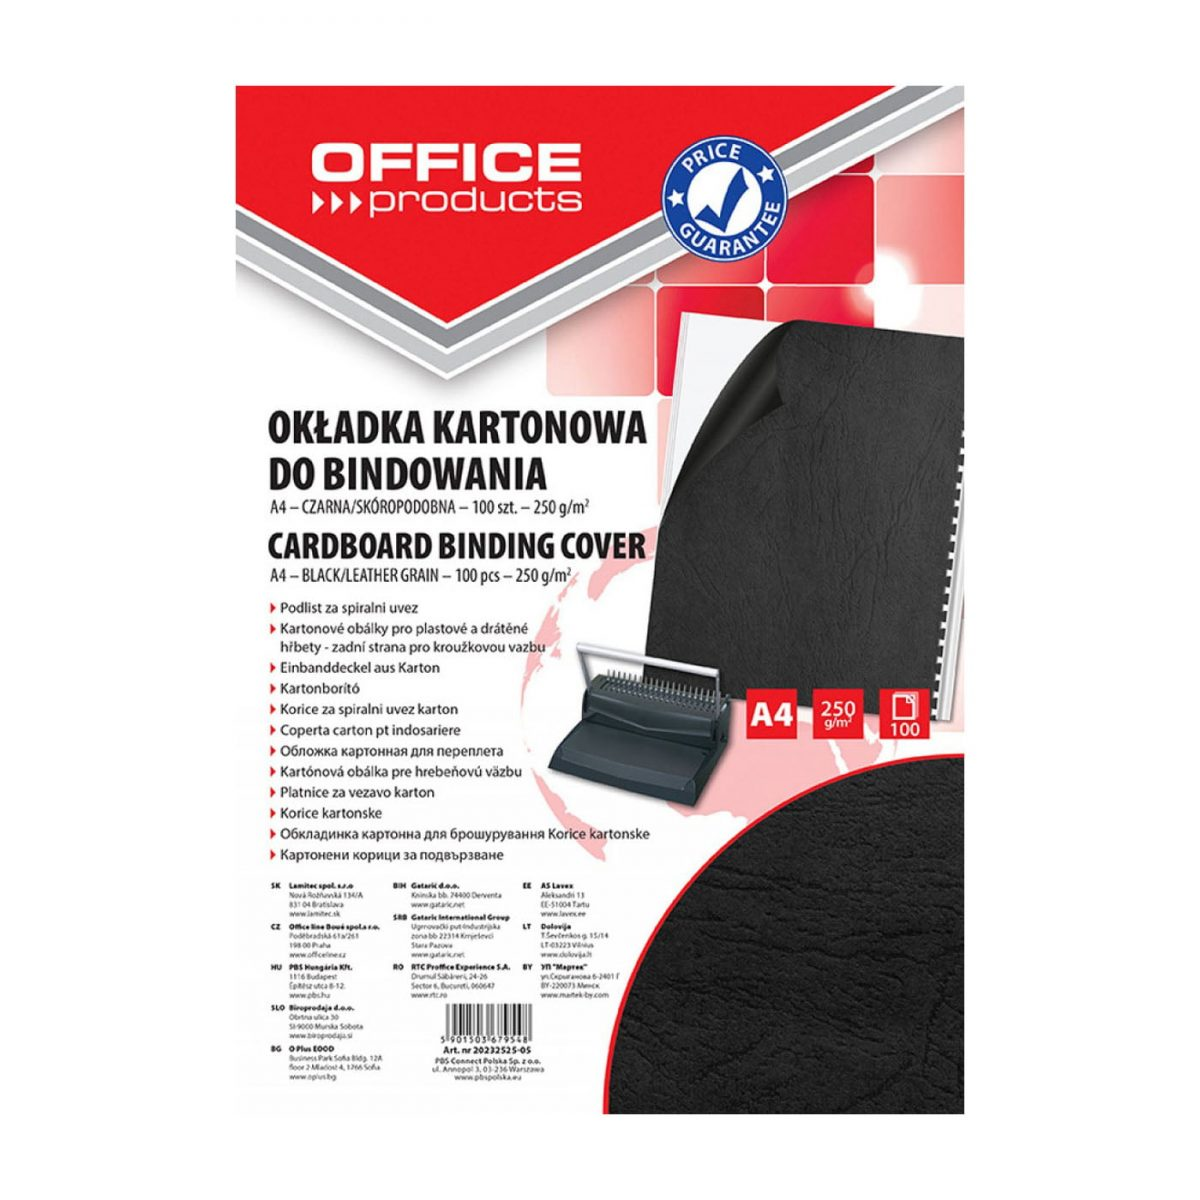 Coperta carton imitatie piele 250g/mp, A4, 100/top Office Products - negru